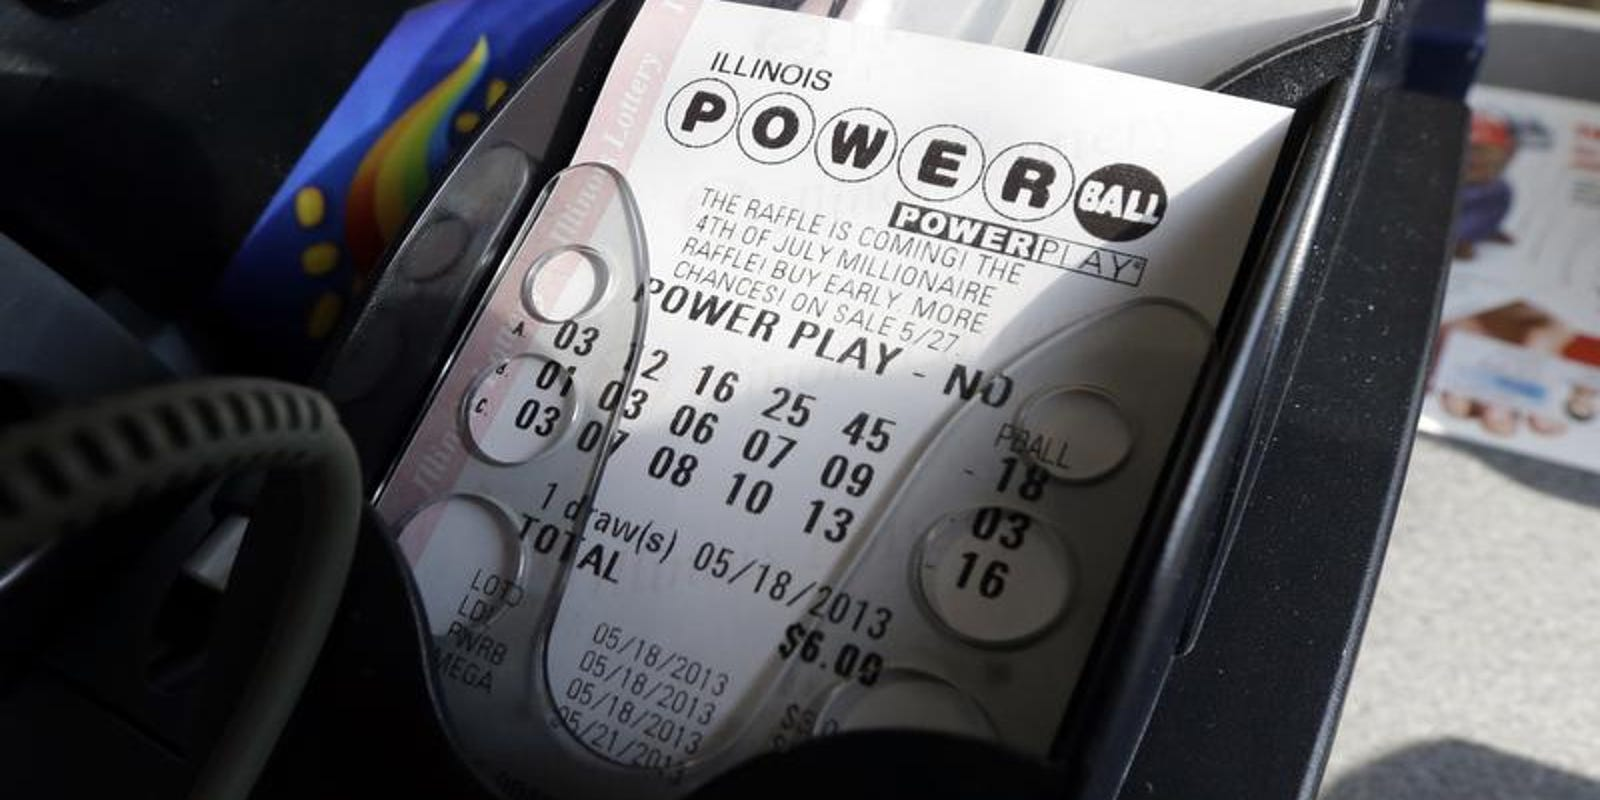 Powerball: Know these office pool rules, state Lottery says